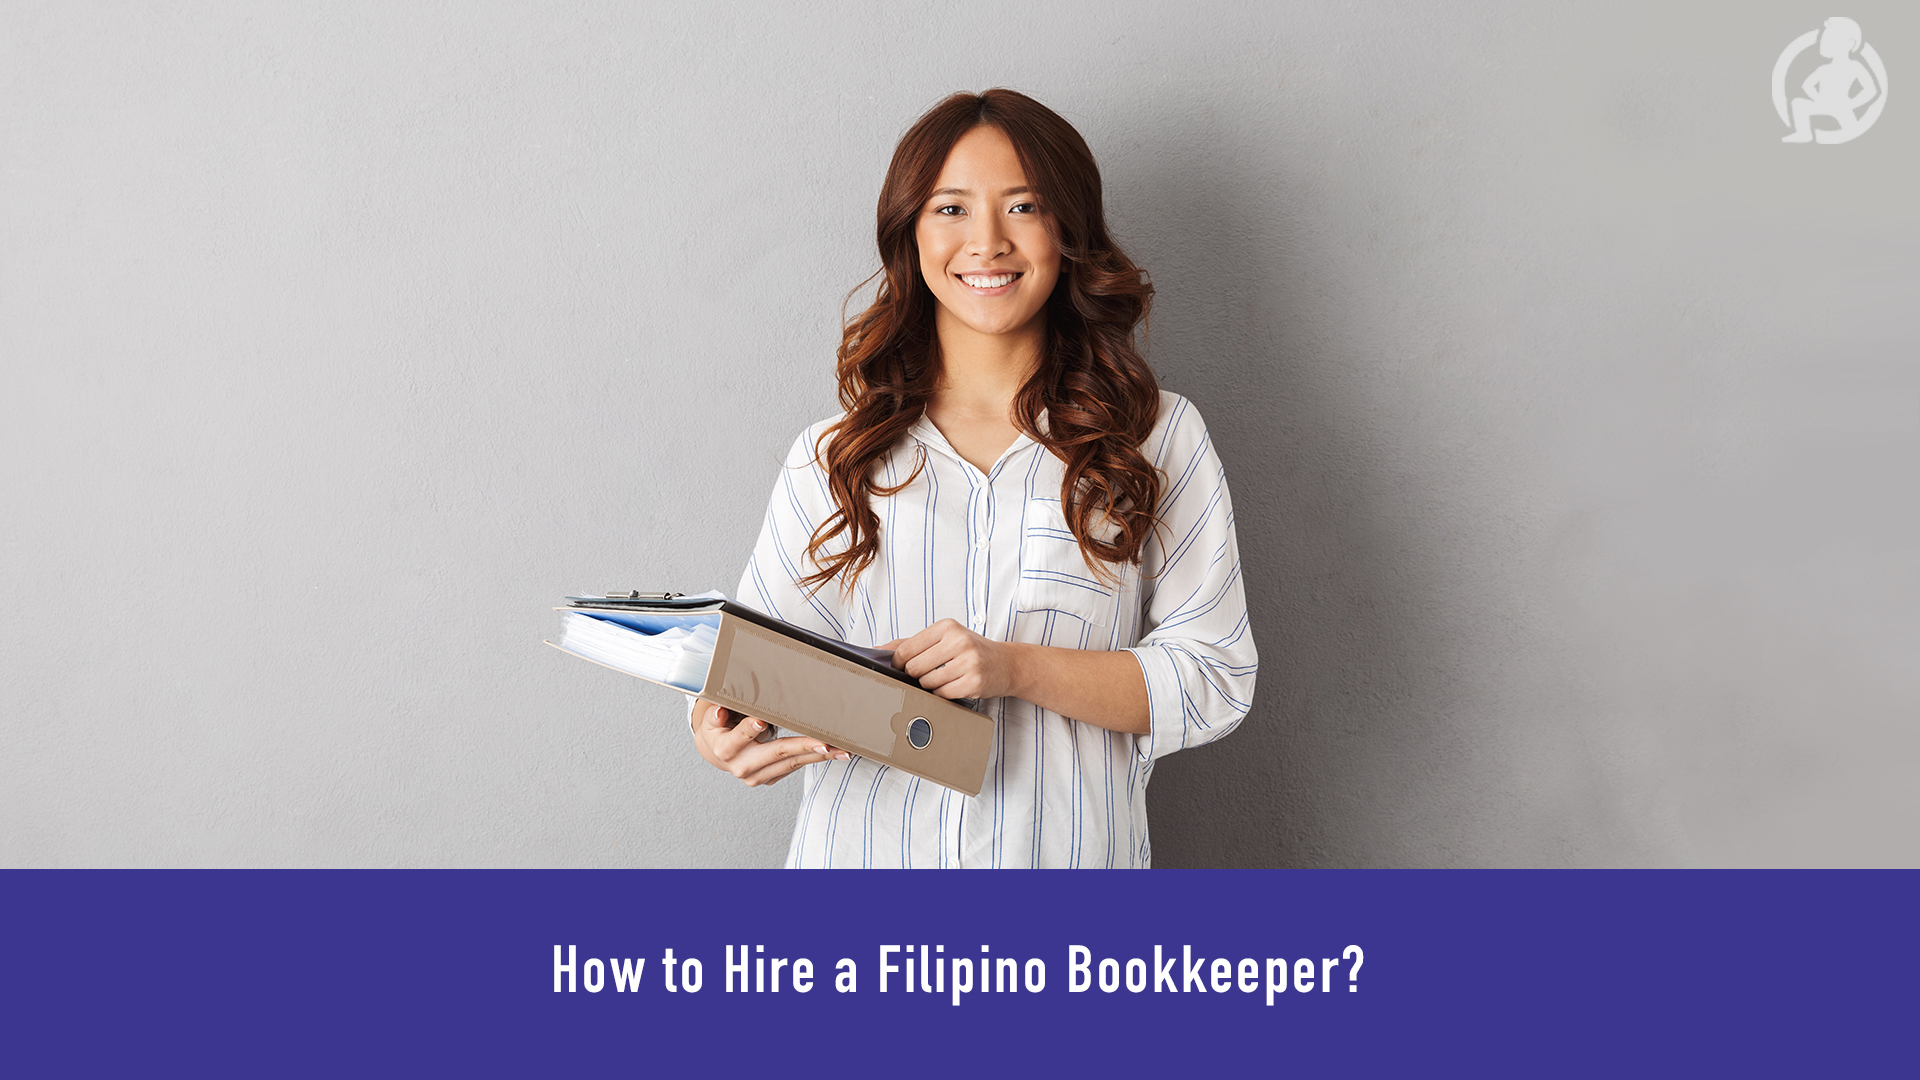 How to Hire a Filipino Bookkeeper? – Practical Advice